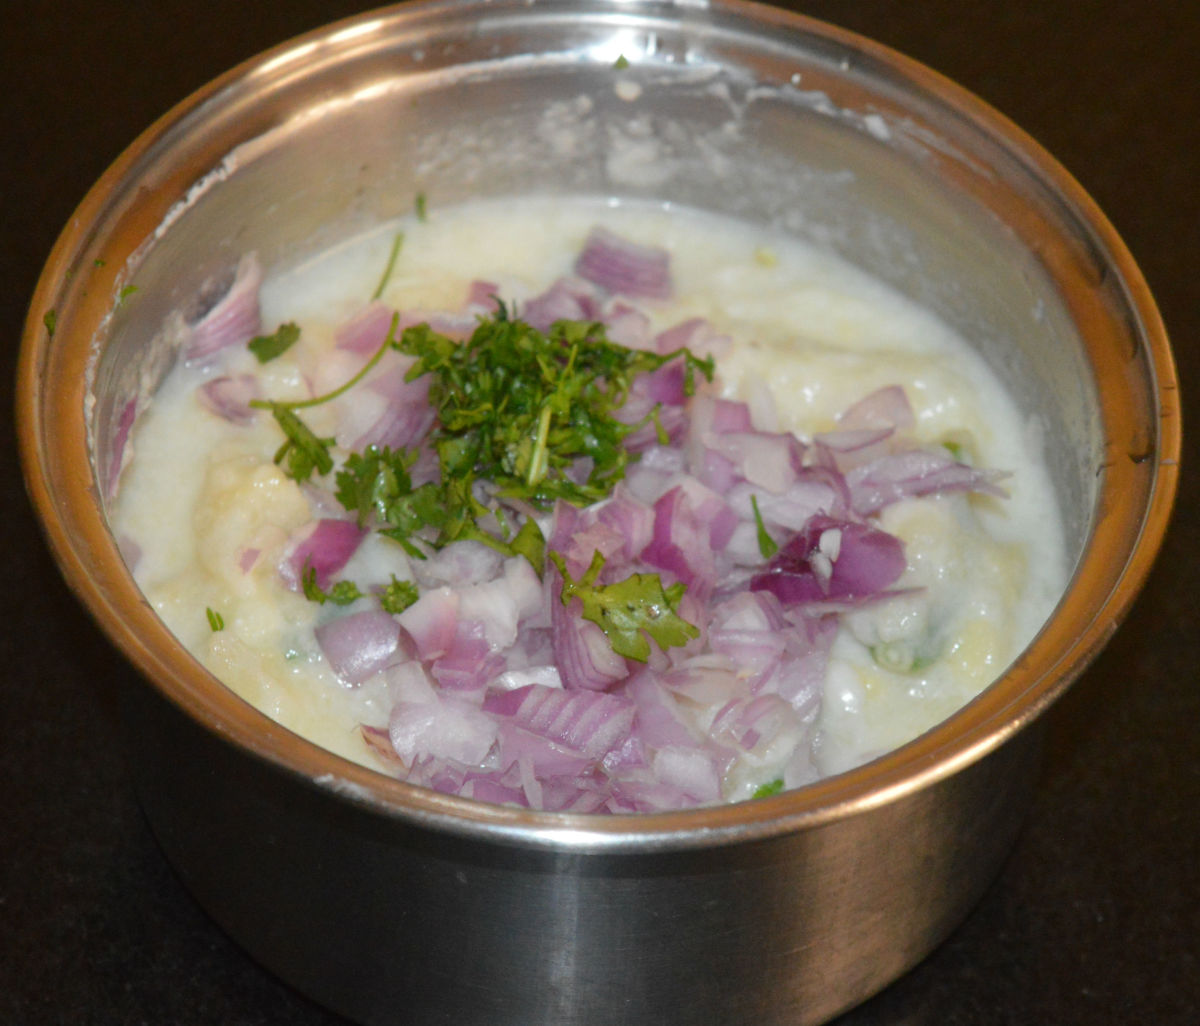 Step two: Add finely chopped onions and chopped fresh coriander leaves. Mix well.